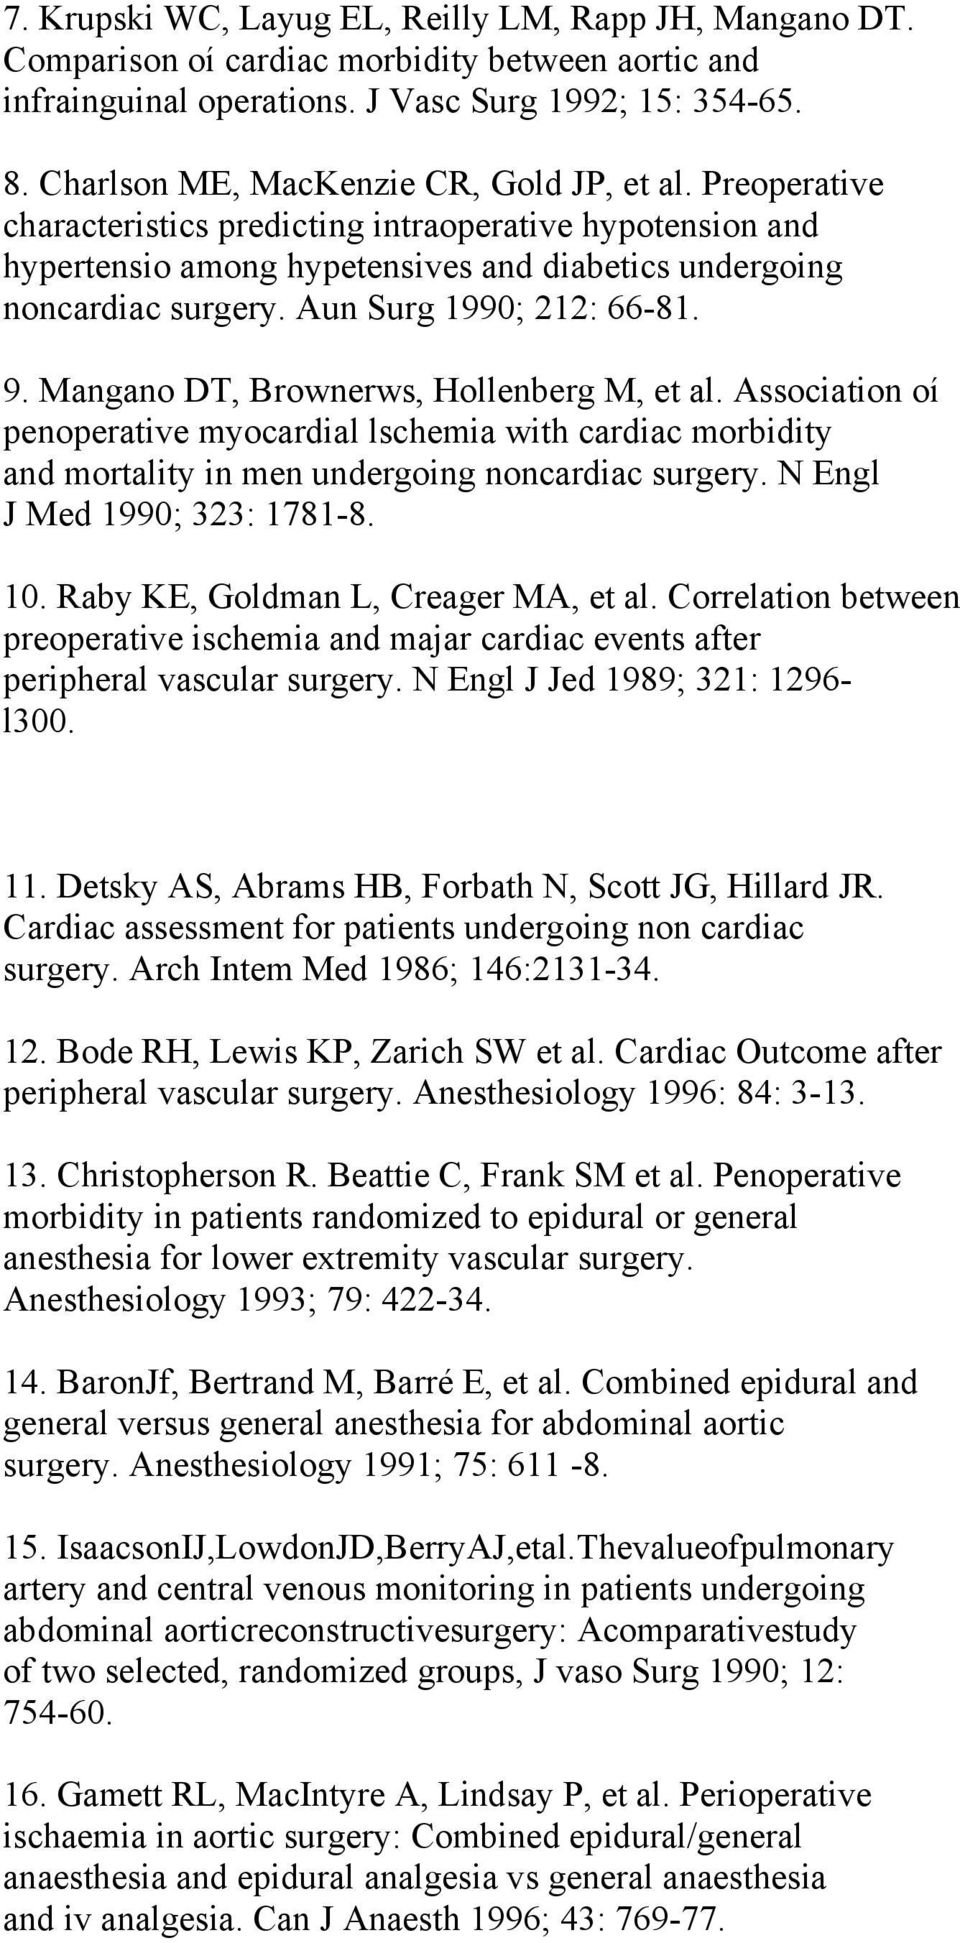 Aun Surg 1990; 212: 66-81. 9. Mangano DT, Brownerws, Hollenberg M, et al. Association oí penoperative myocardial lschemia with cardiac morbidity and mortality in men undergoing noncardiac surgery.